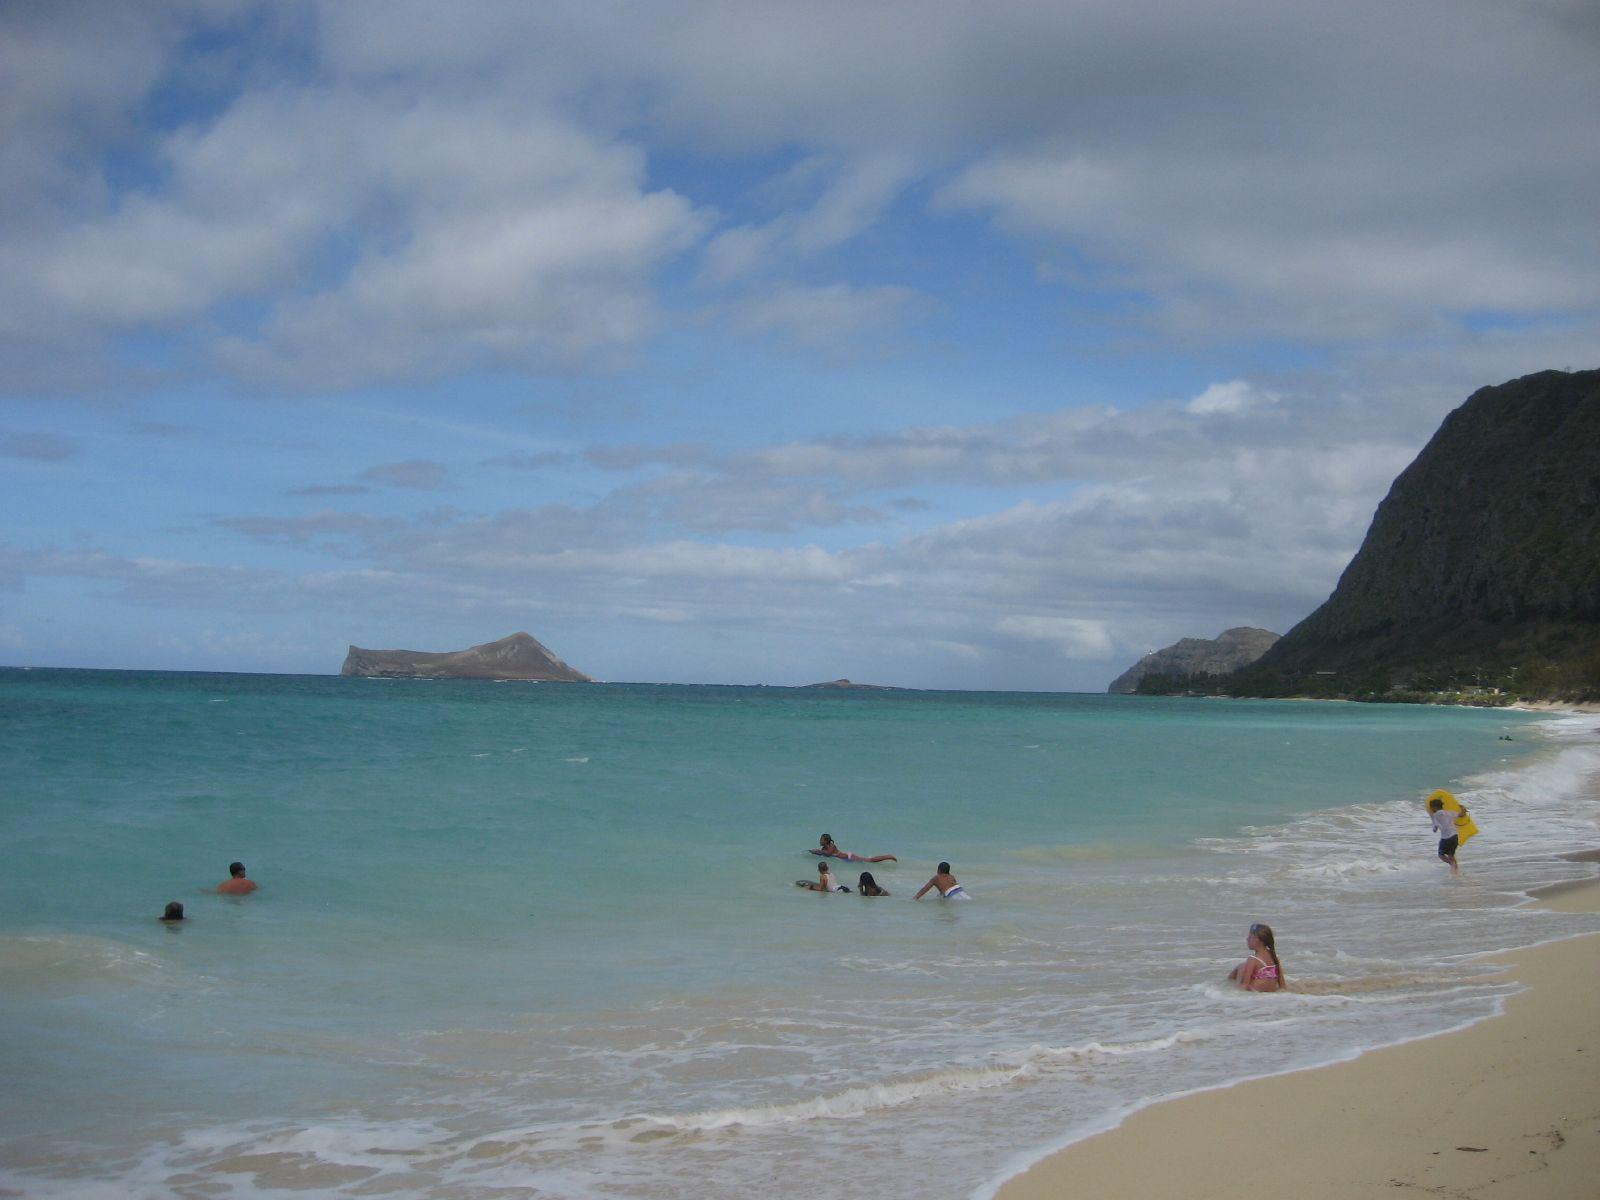 "Oahu Windward (East) Shore<br />Photo <a href=""//creativecommons.org/licences/by-nc-sa/3.0/"" class=""cc-small"" target=""_blank""><img typeof=""foaf:Image"" class=""image-style-none"" src=""https://i.creativecommons.org/l/by-nc-sa/3.0/80x15.png"" width=""80px"" height=""15px"" alt=""Creative Commons Licence"" /></a> <a href=""https://www.flickr.com/photos/34218236@N00/1102435776"">Marco Mazzei</a>"